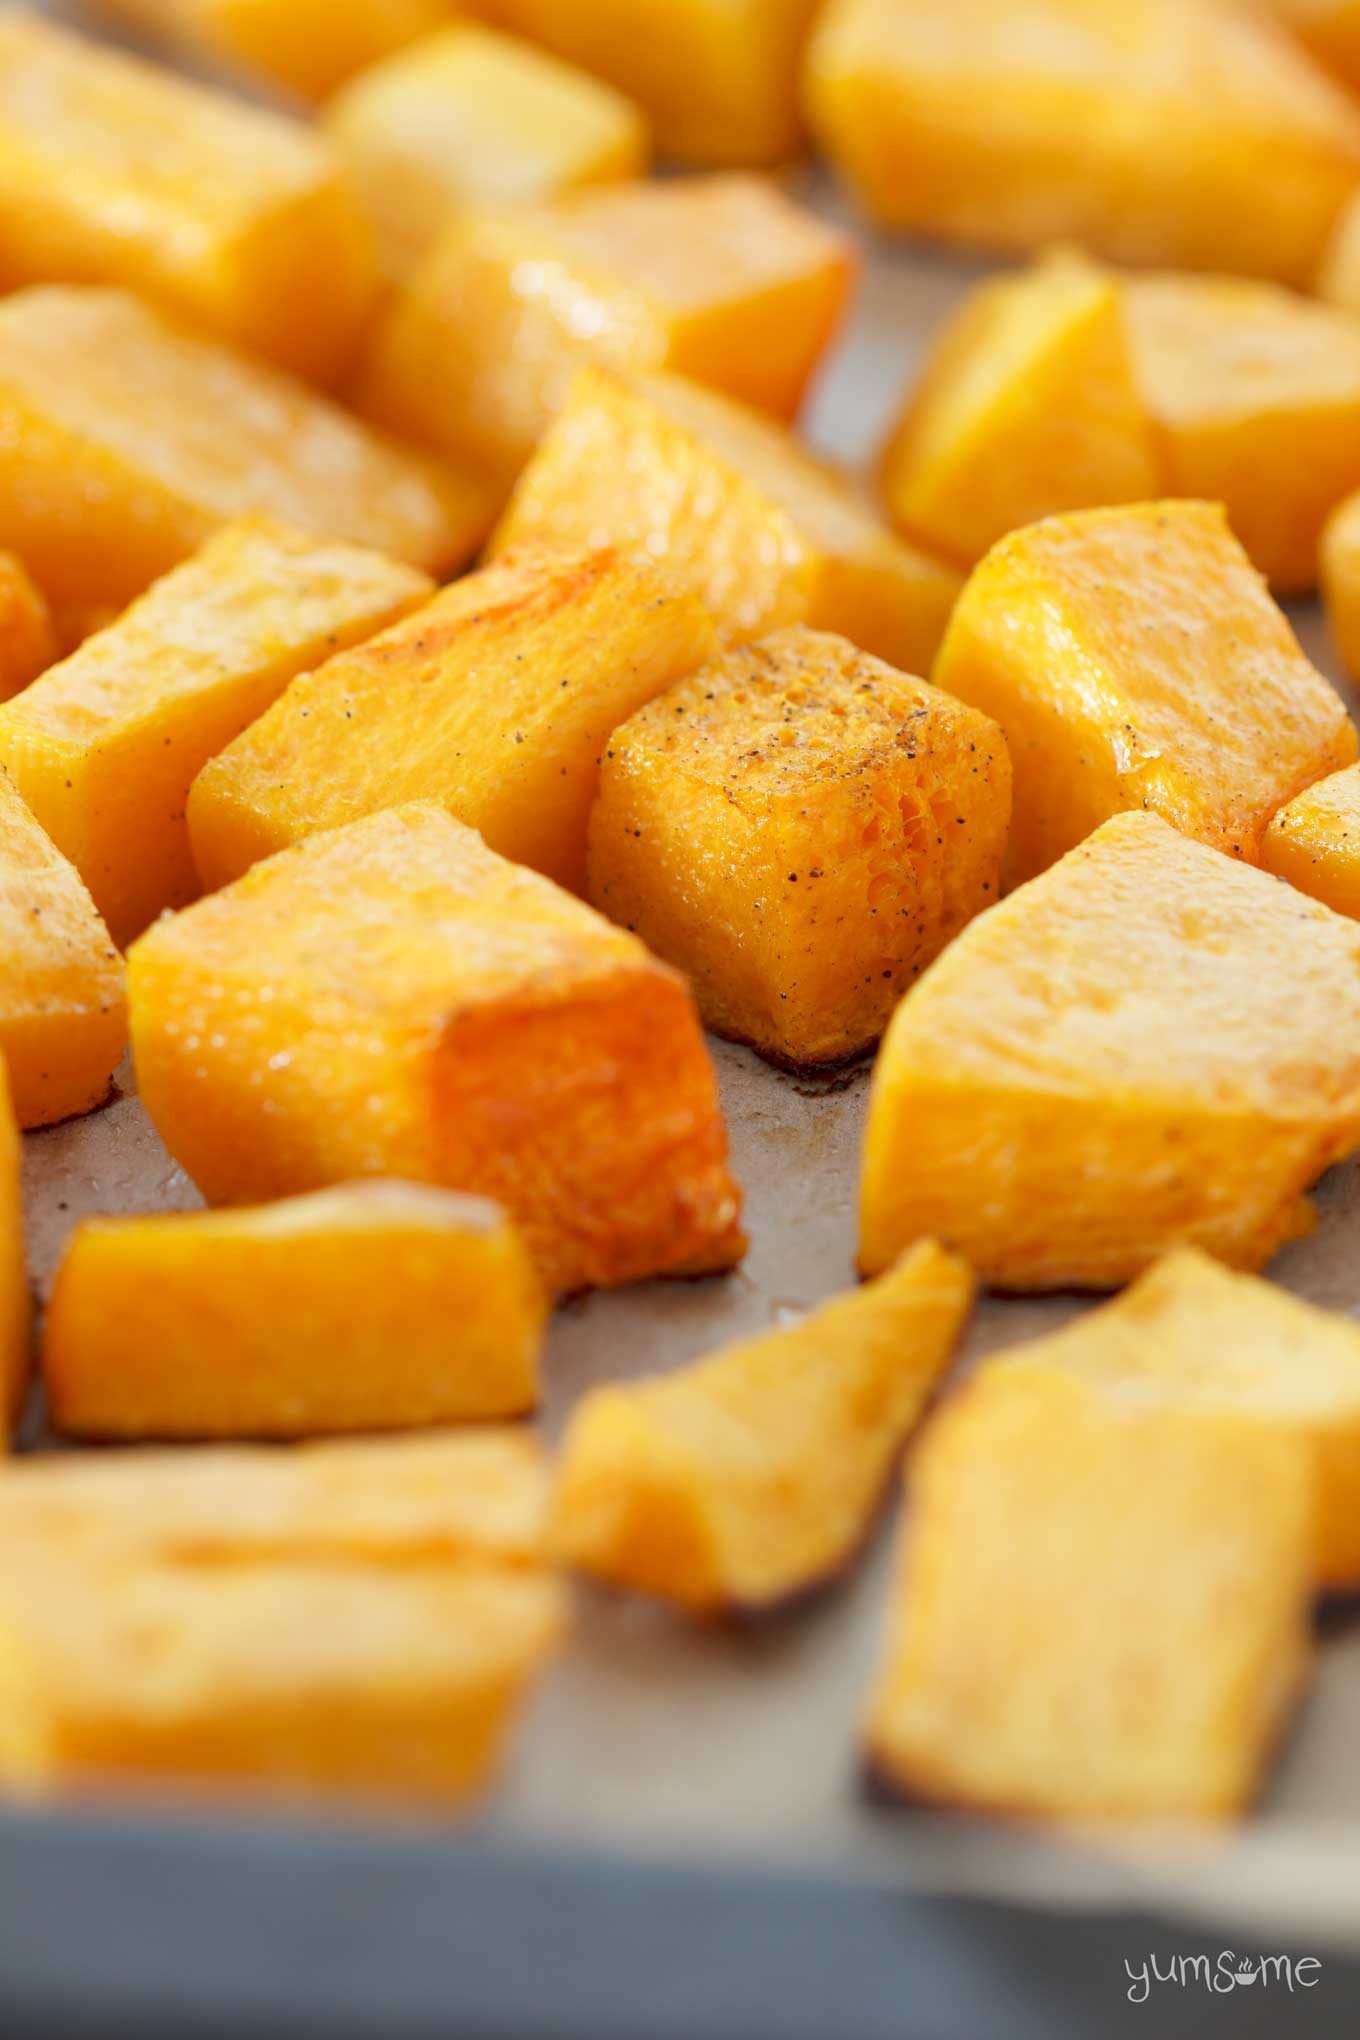 Cubes of cooked pumpkin on a baking tray.